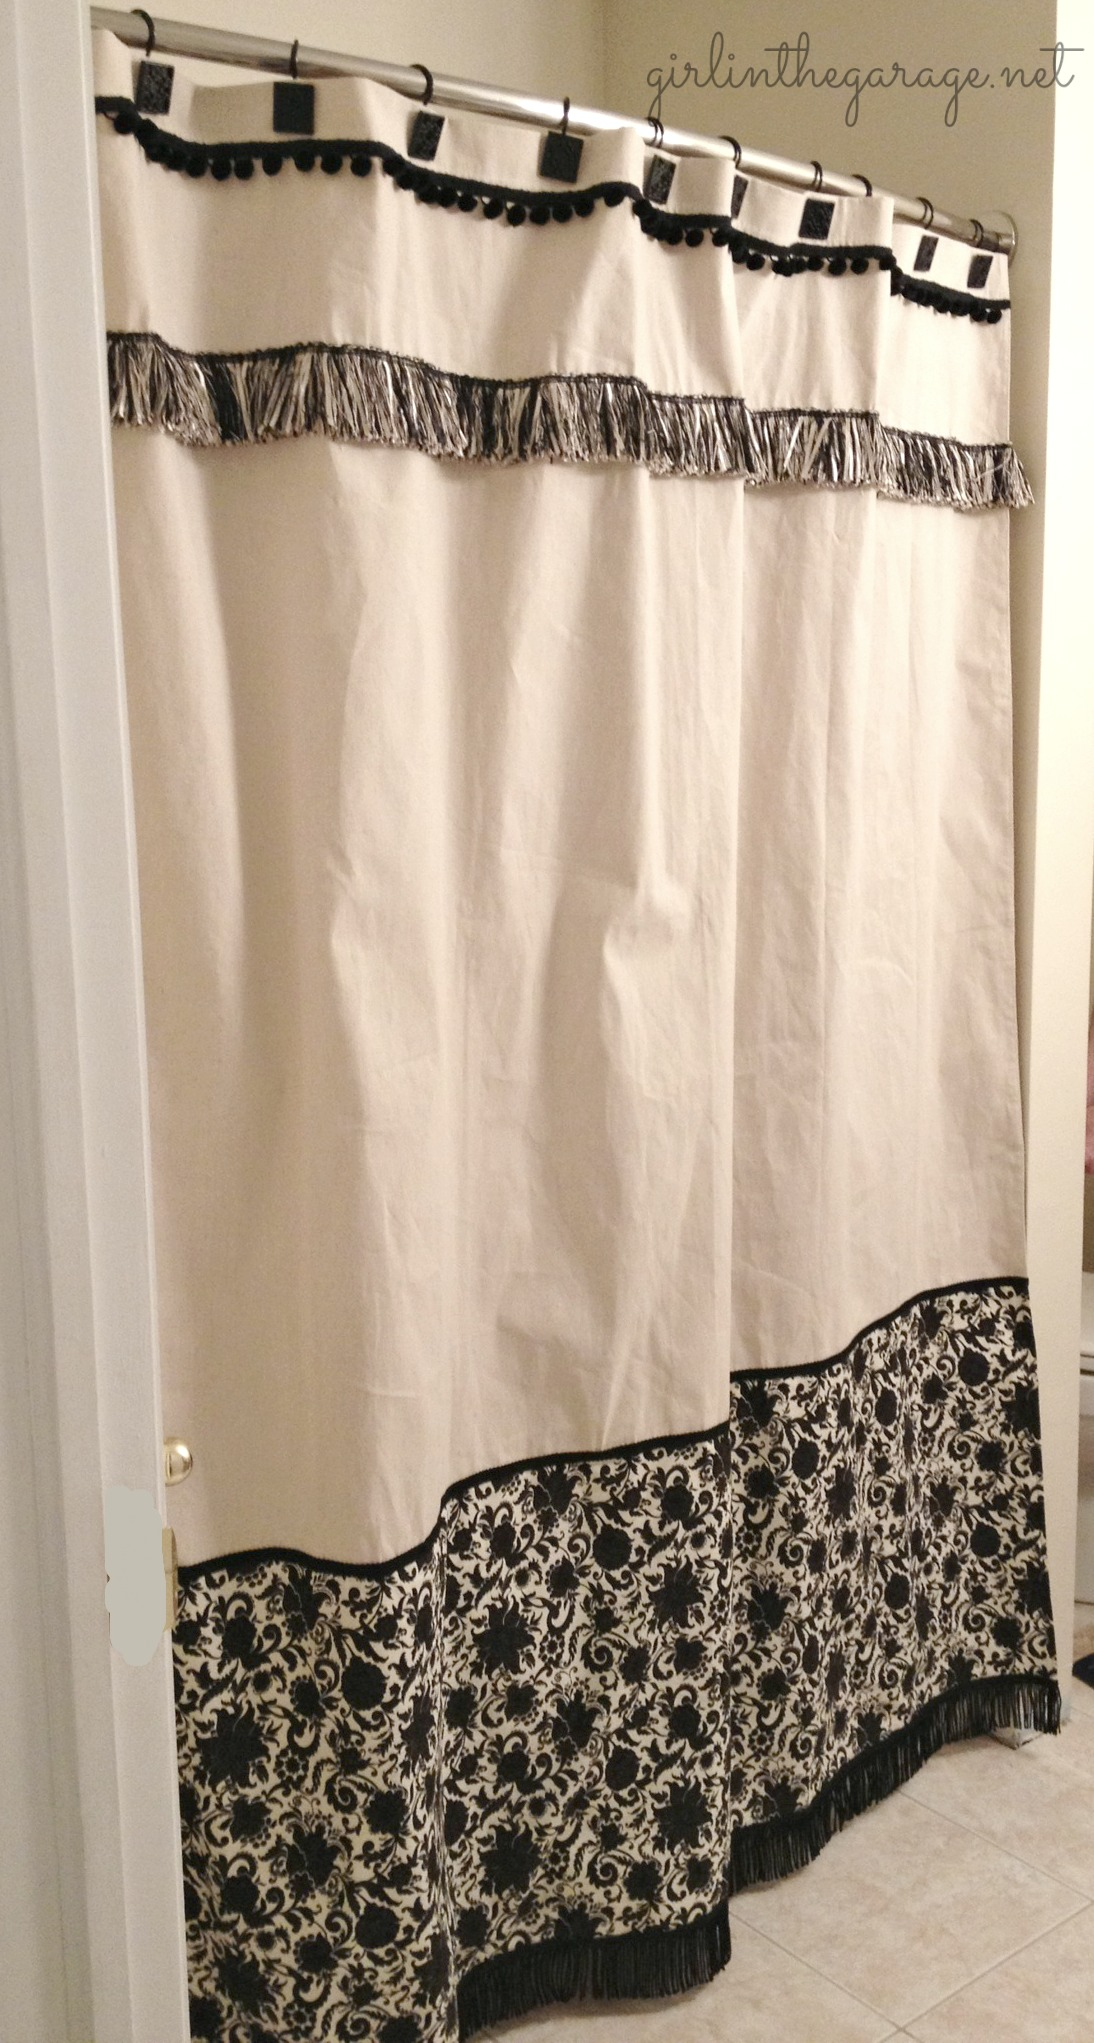 Painted Bathroom Cabinet Ideas Diy Custom Shower Curtain Girl In The Garage 174